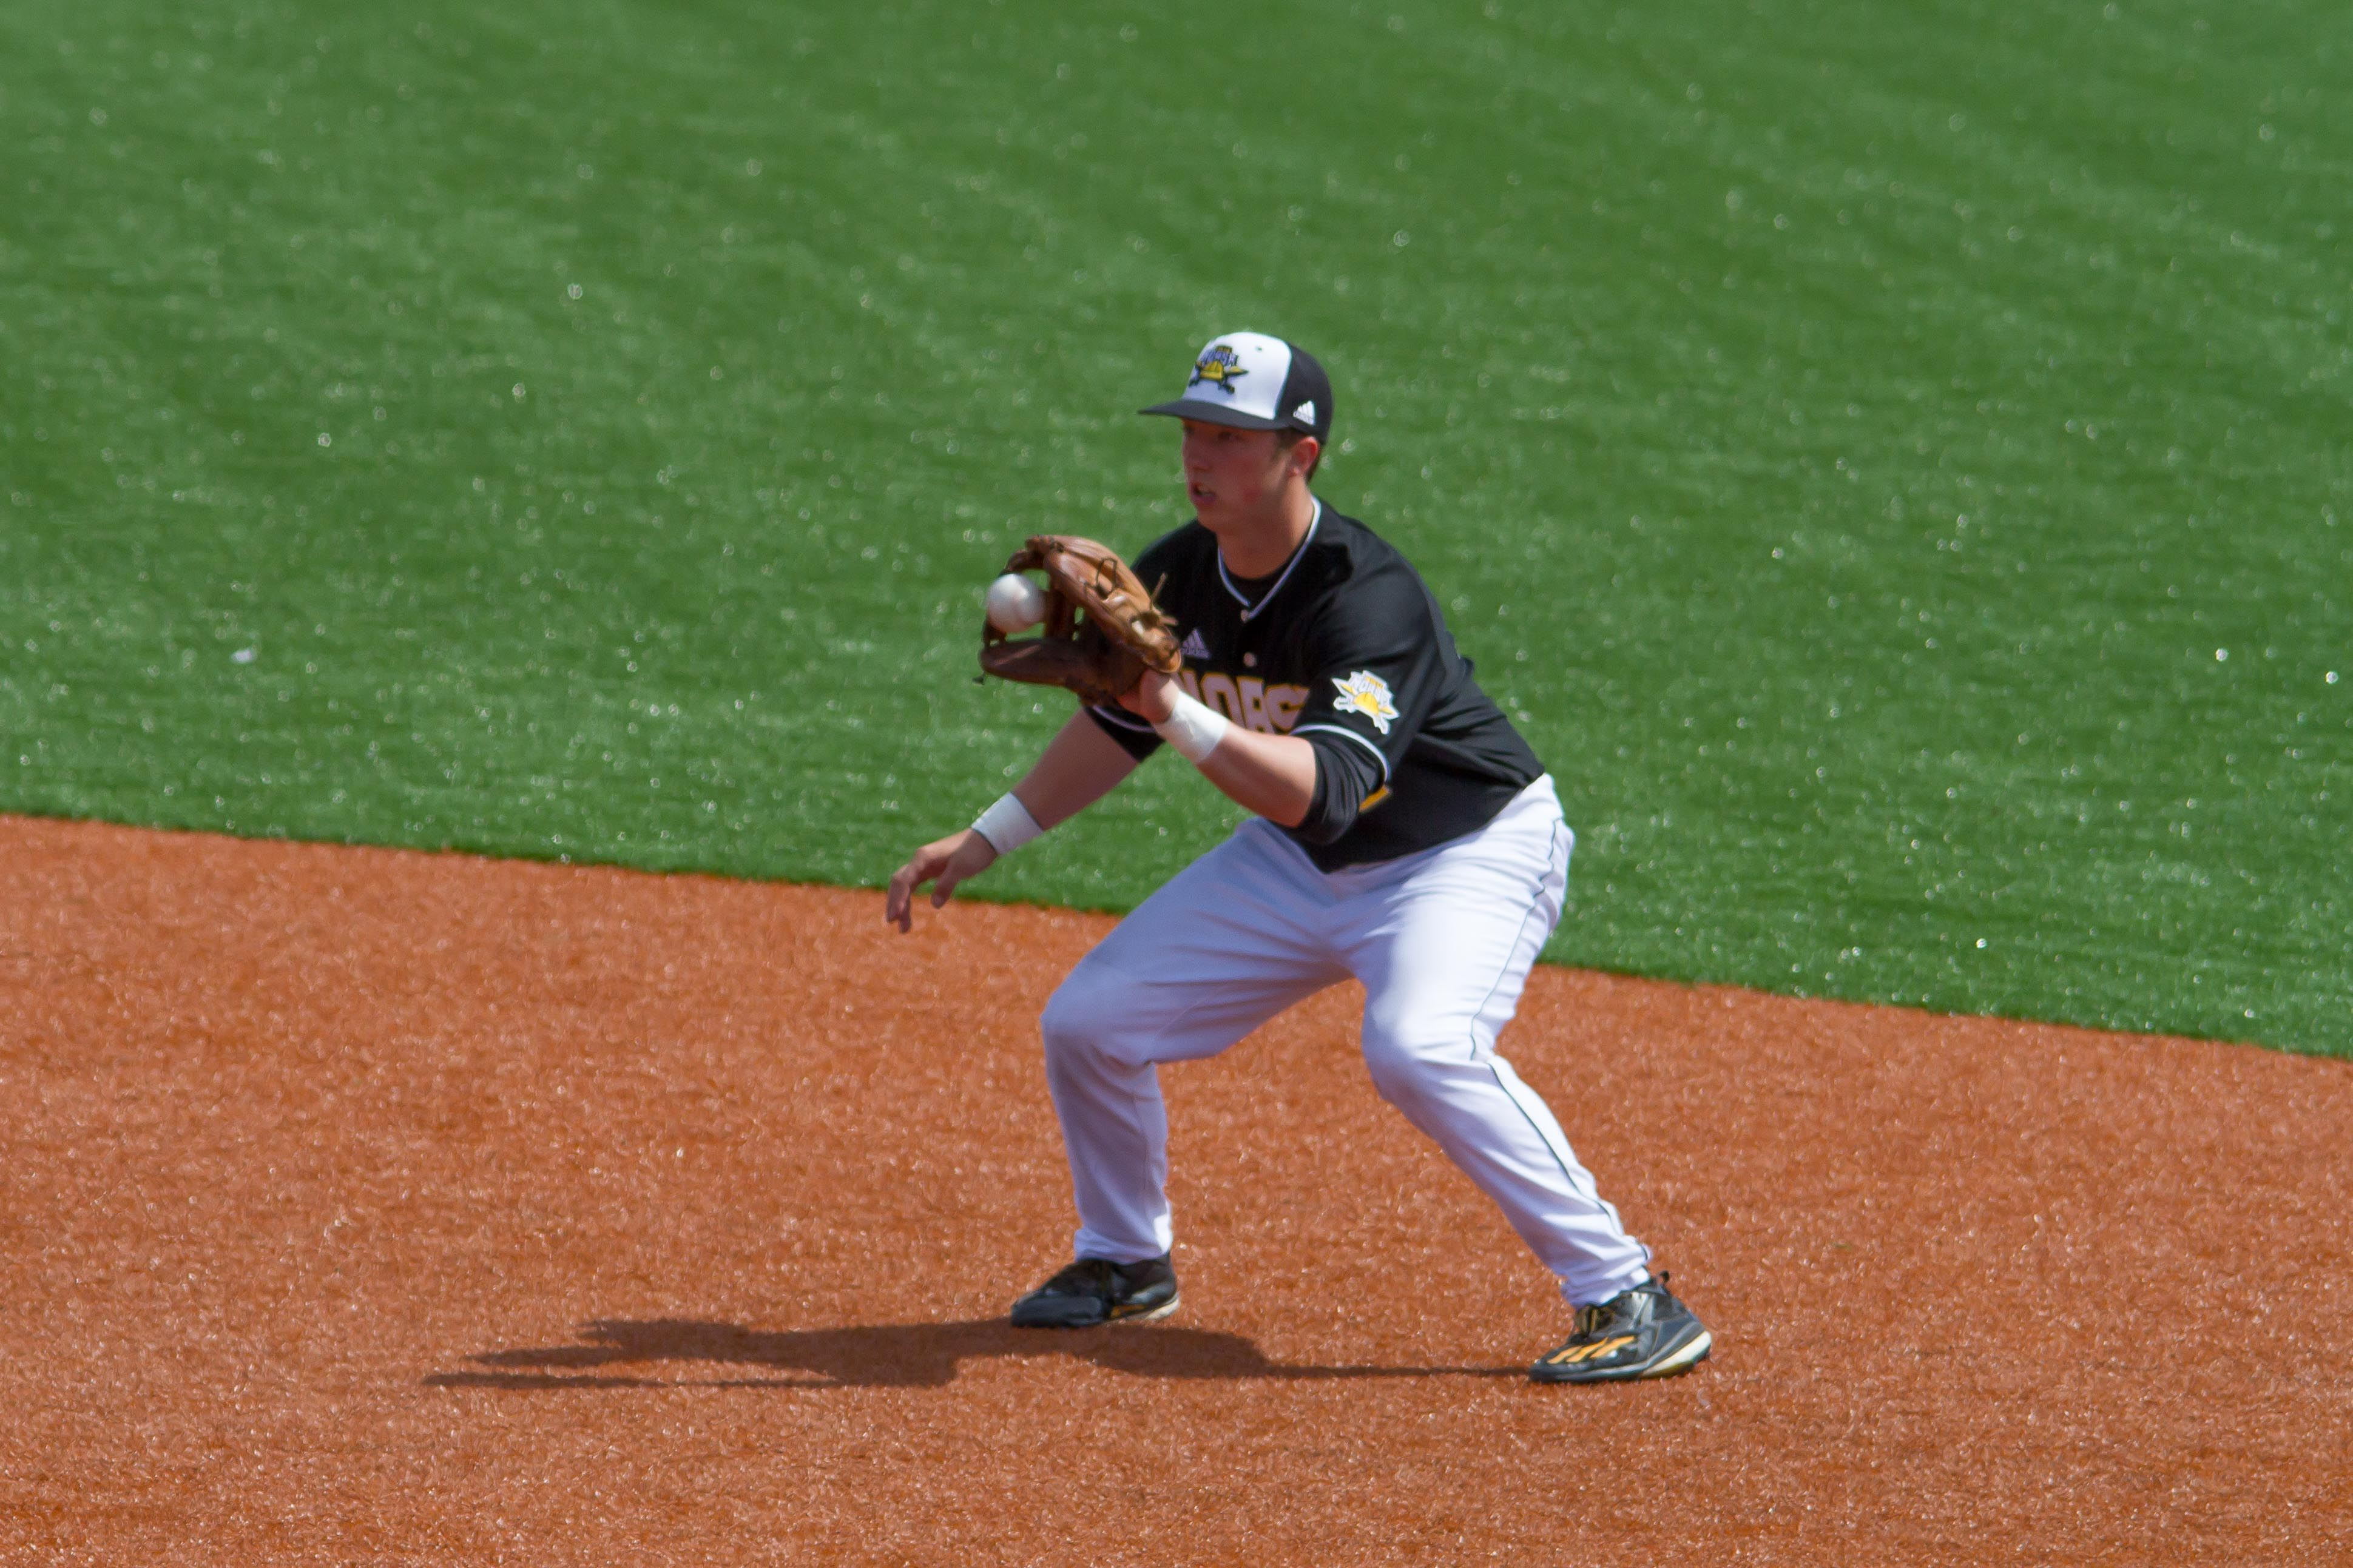 Kyle Colletta scored two runs in Sunday's victory over the Penguins